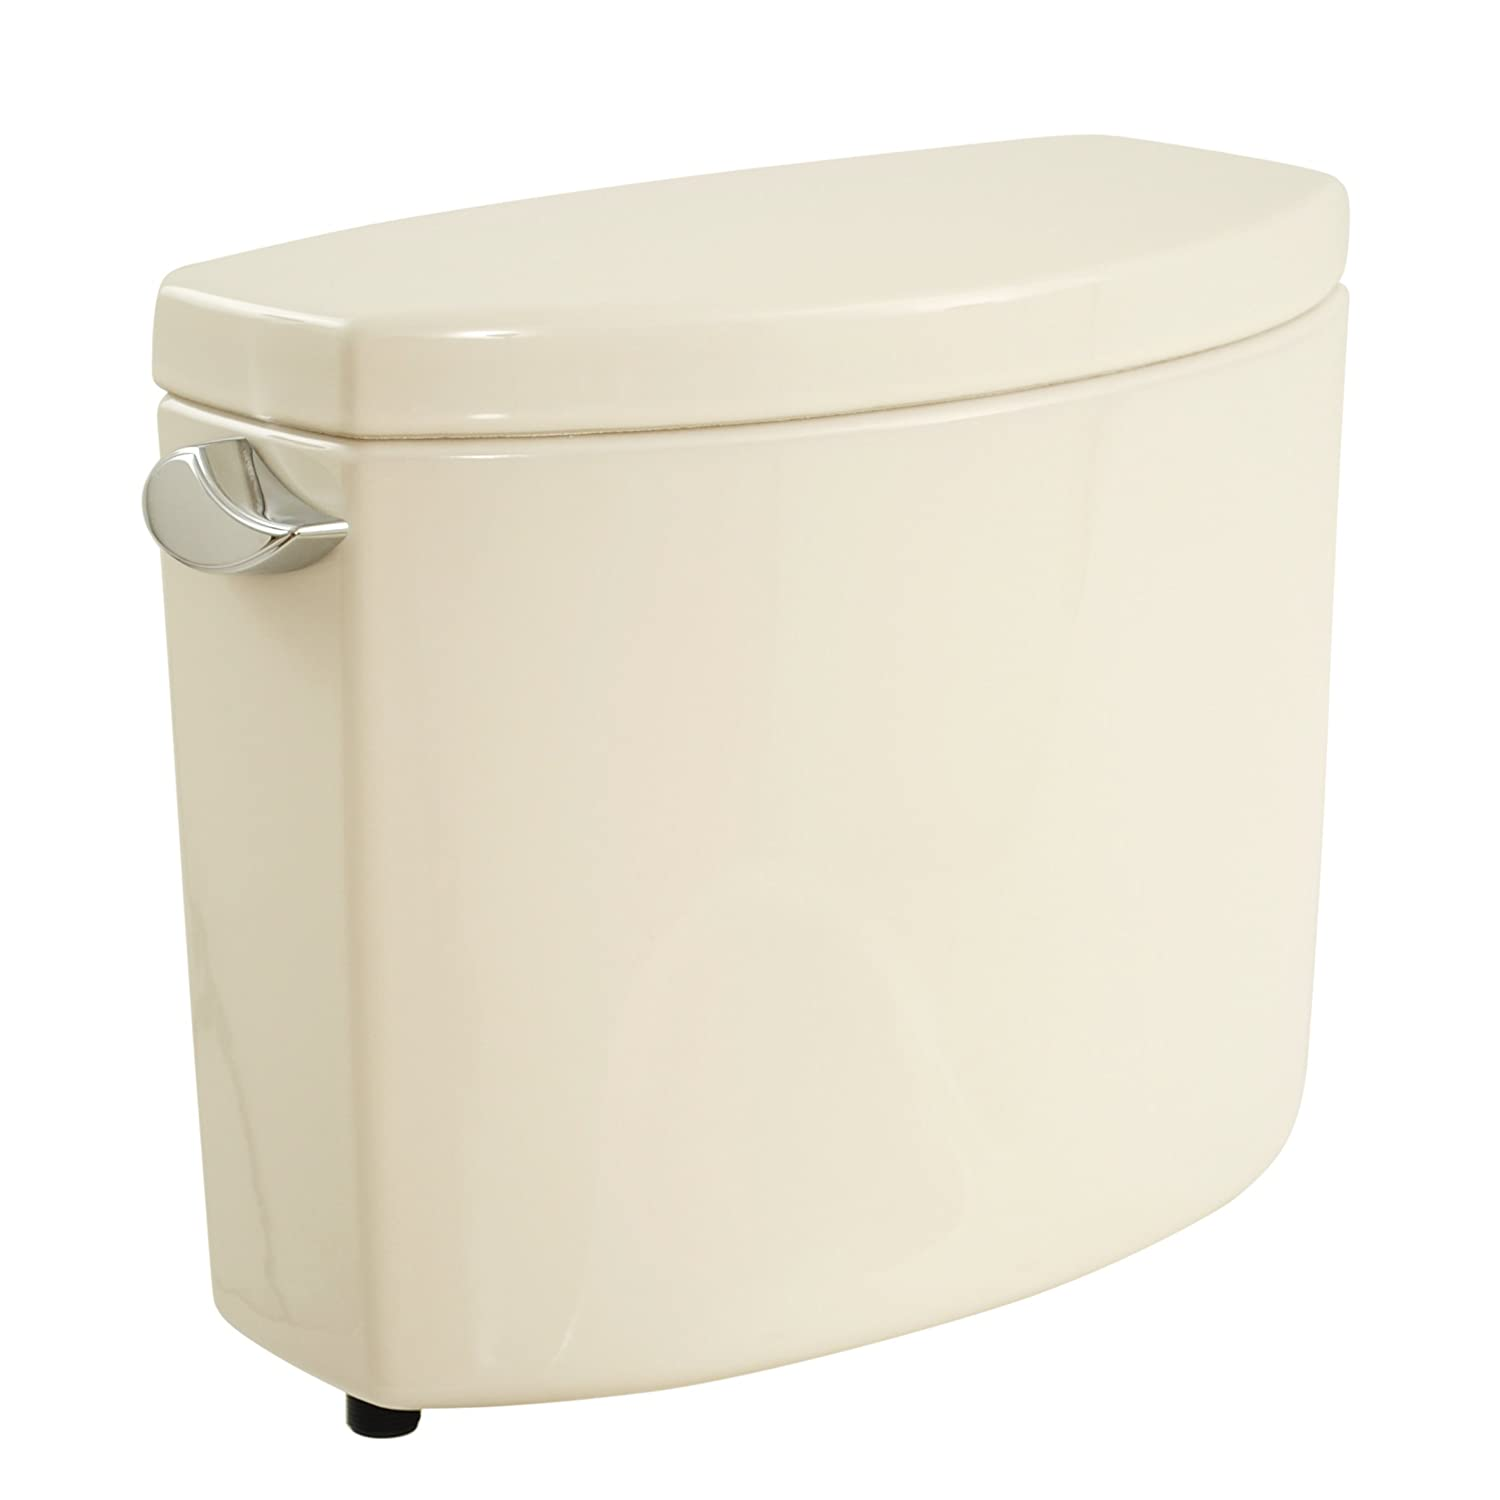 Colonial White TOTO ST454E#11 Drake II Tank with E-Max Flushing System Tank Only